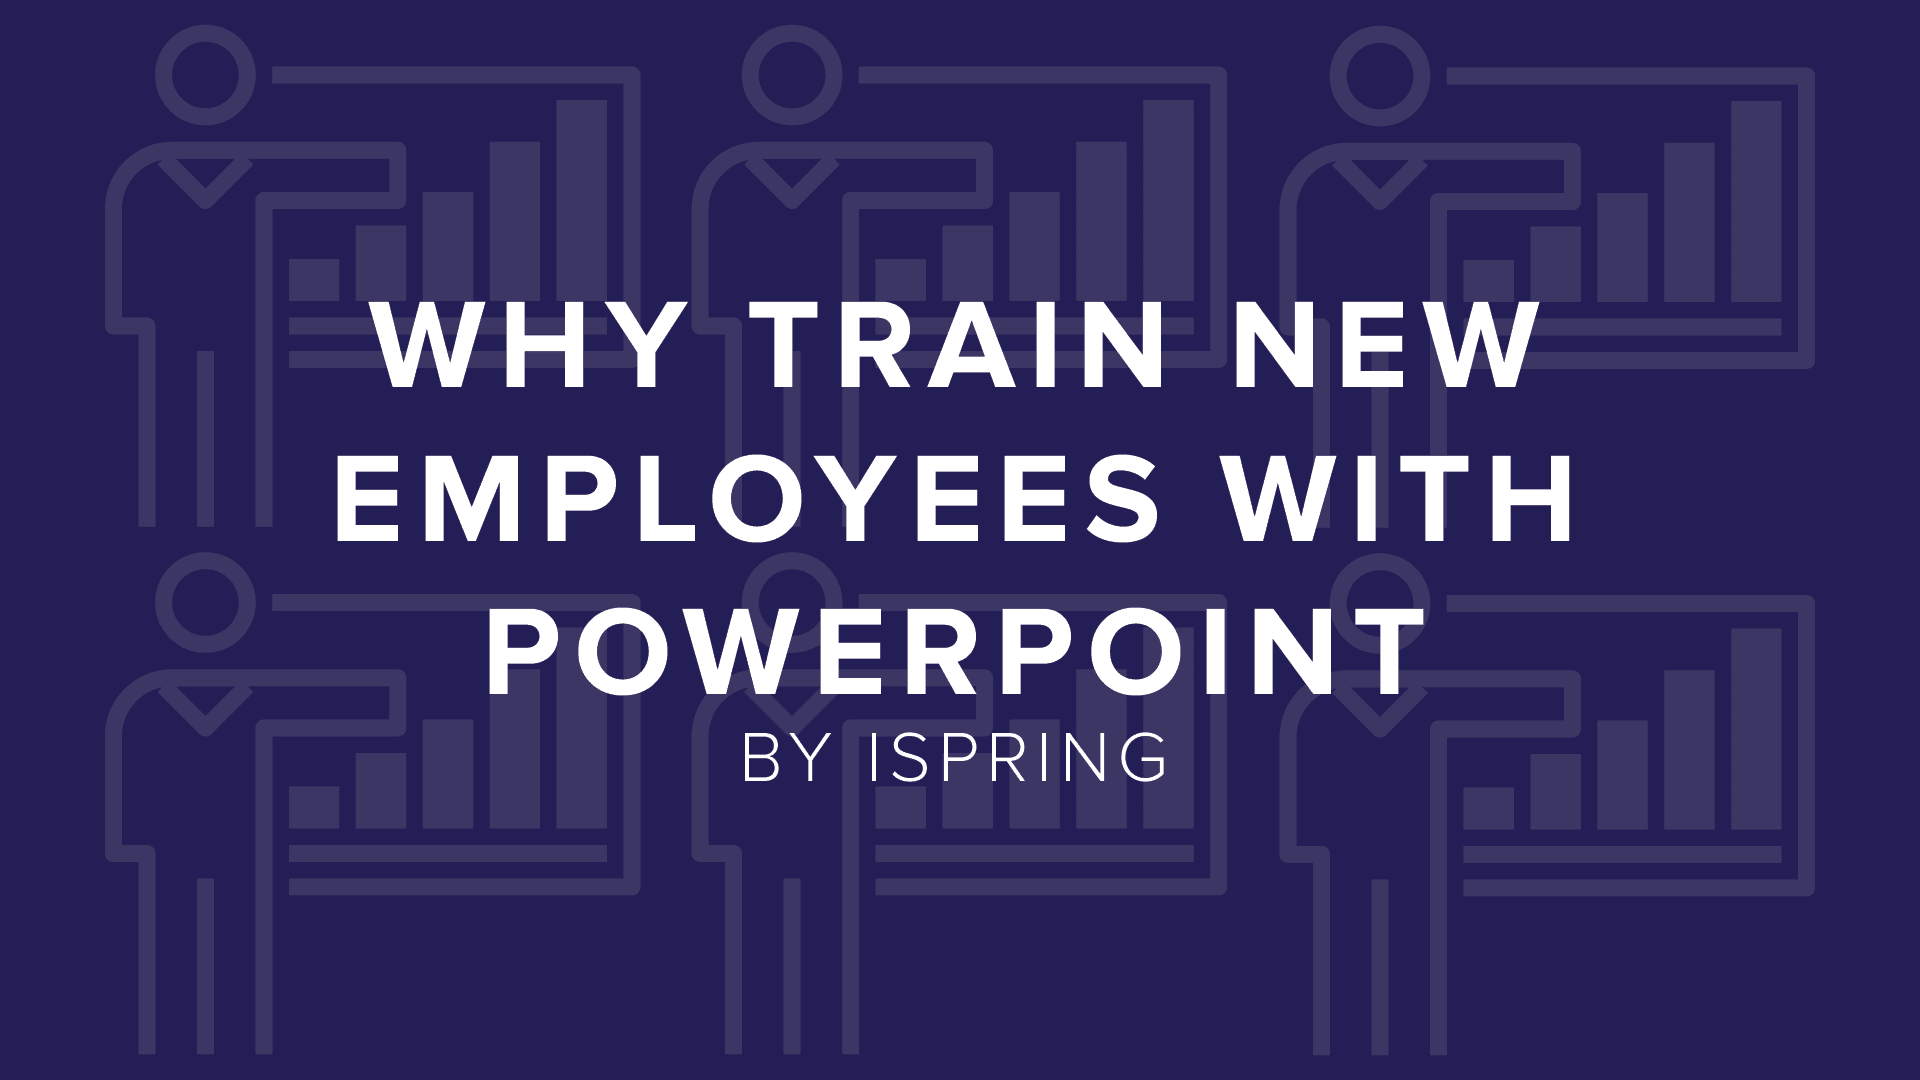 DigitalChalk: Why PowerPoint is Effective for Training New Employees by iSpring